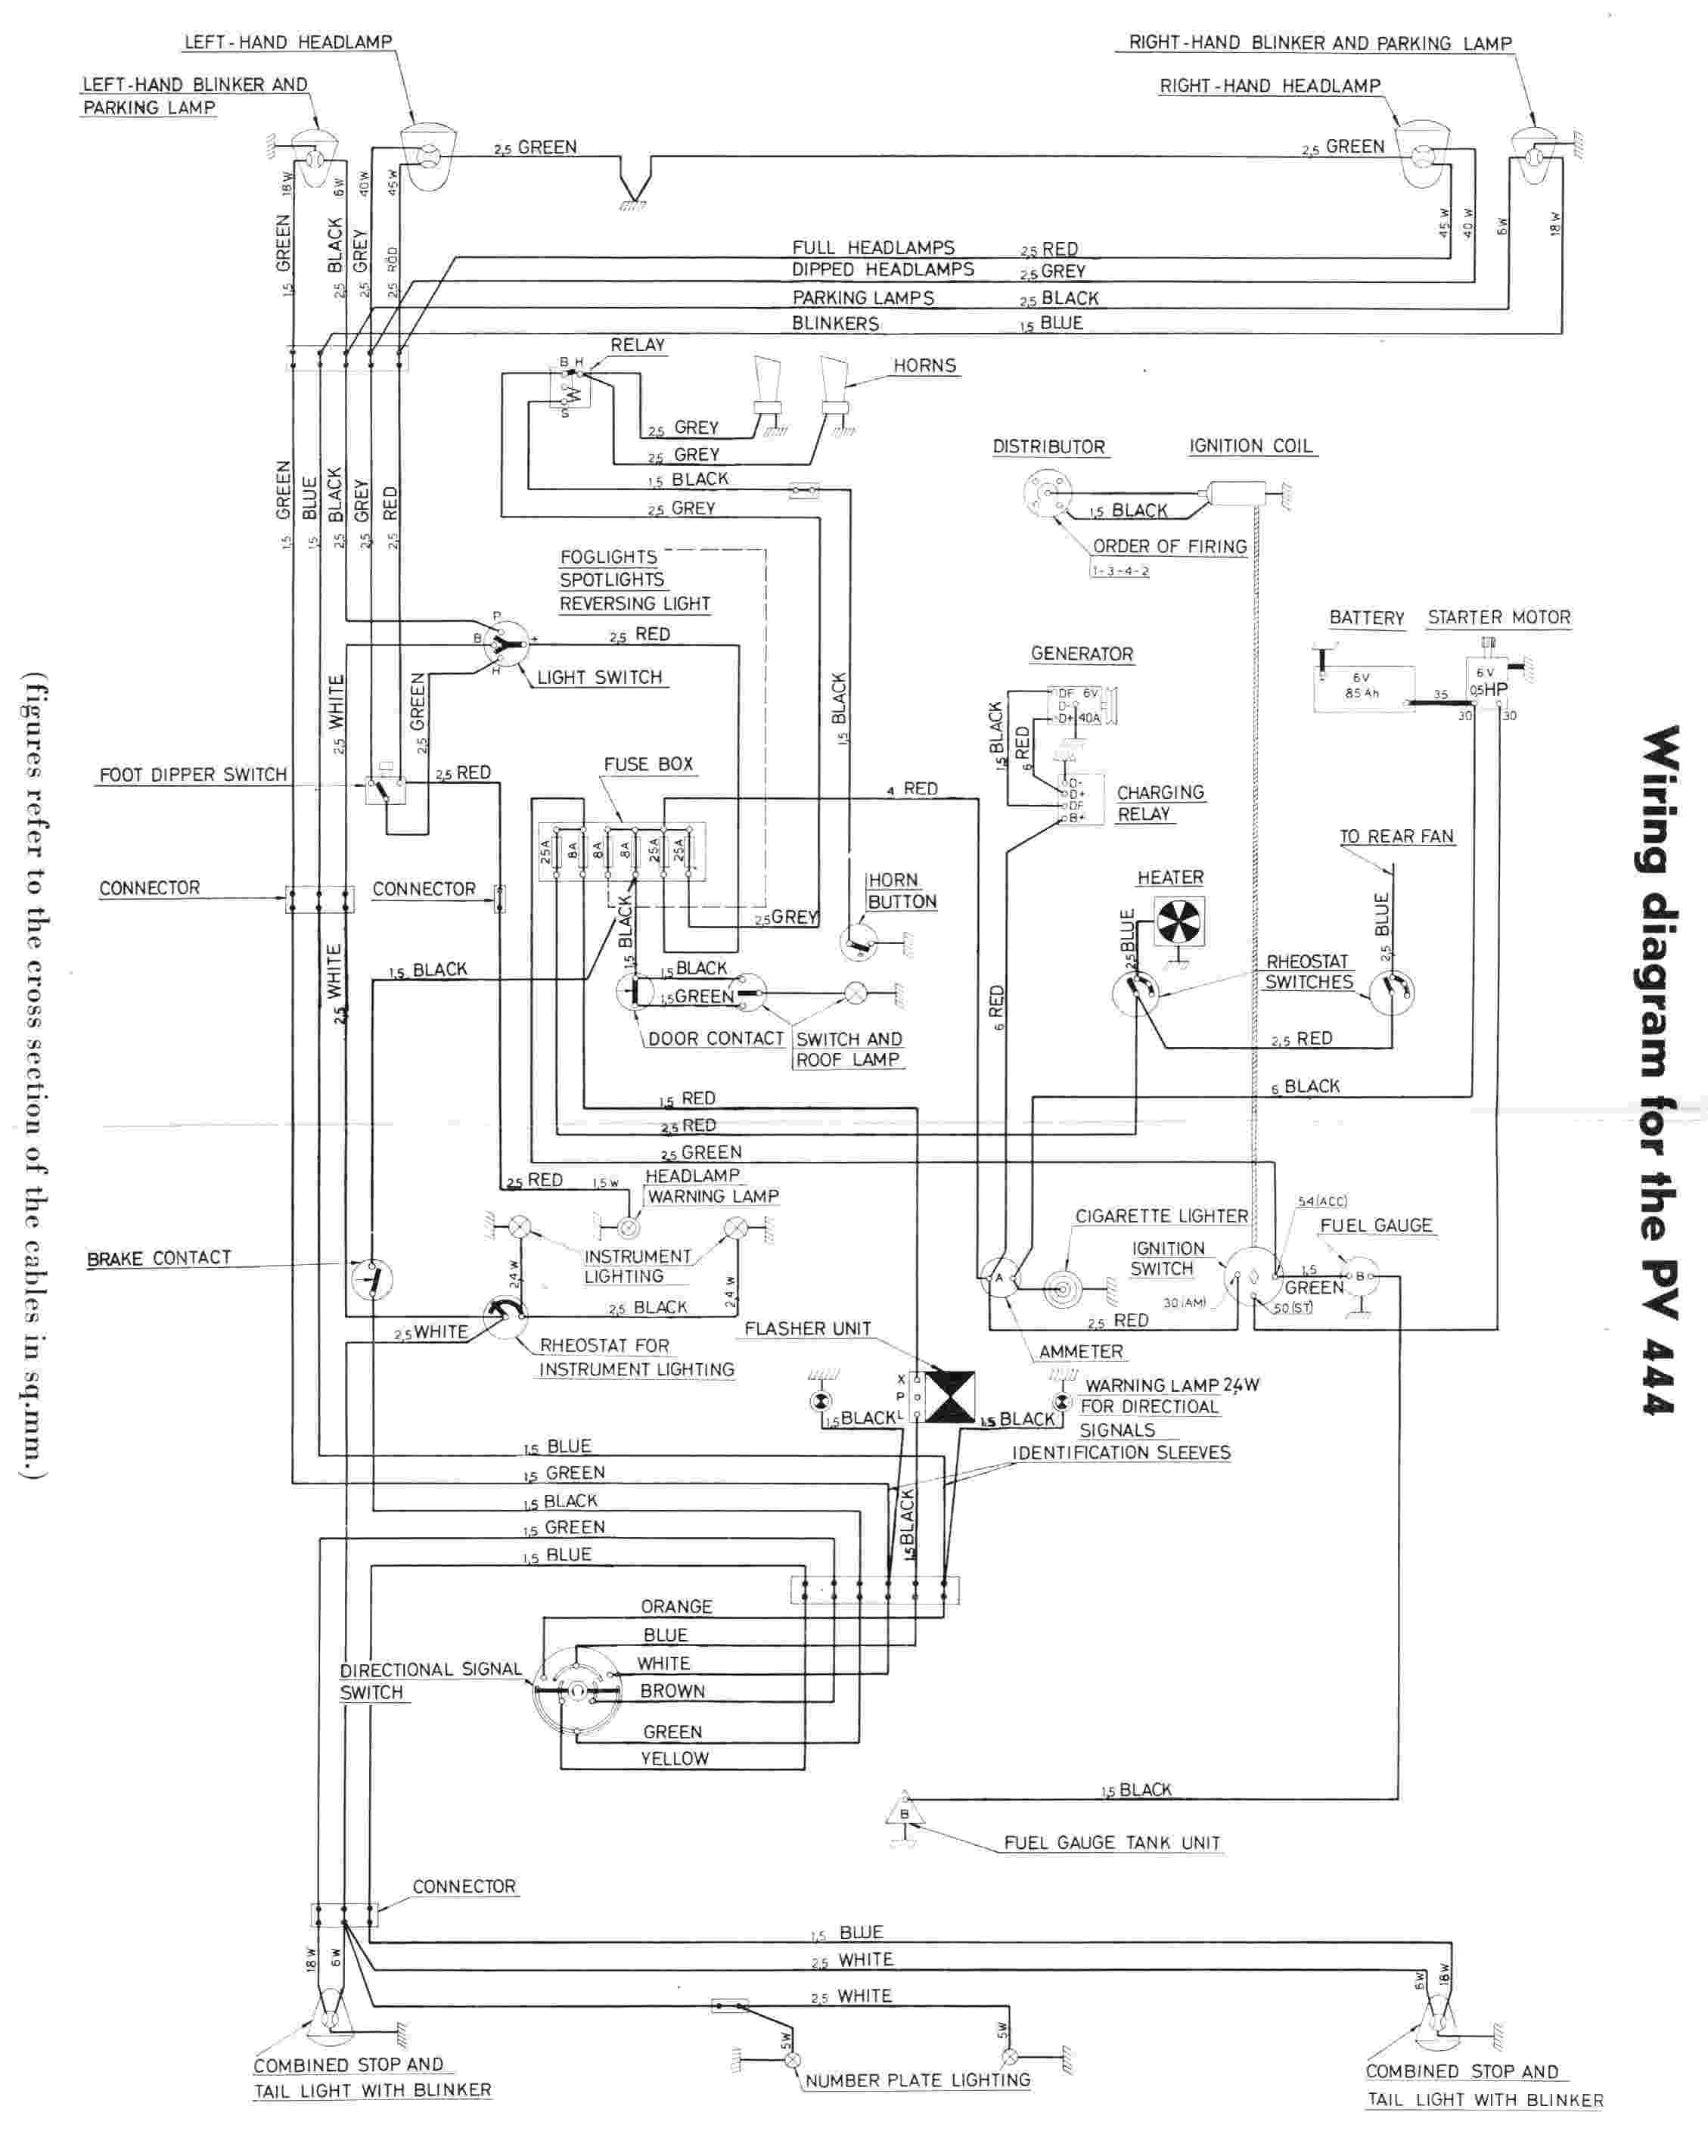 Citroen Xsara Bsi Wiring Diagram Car Diagrams Explained Schematics Xantia Hdi Rh Woodmart Co Wrc